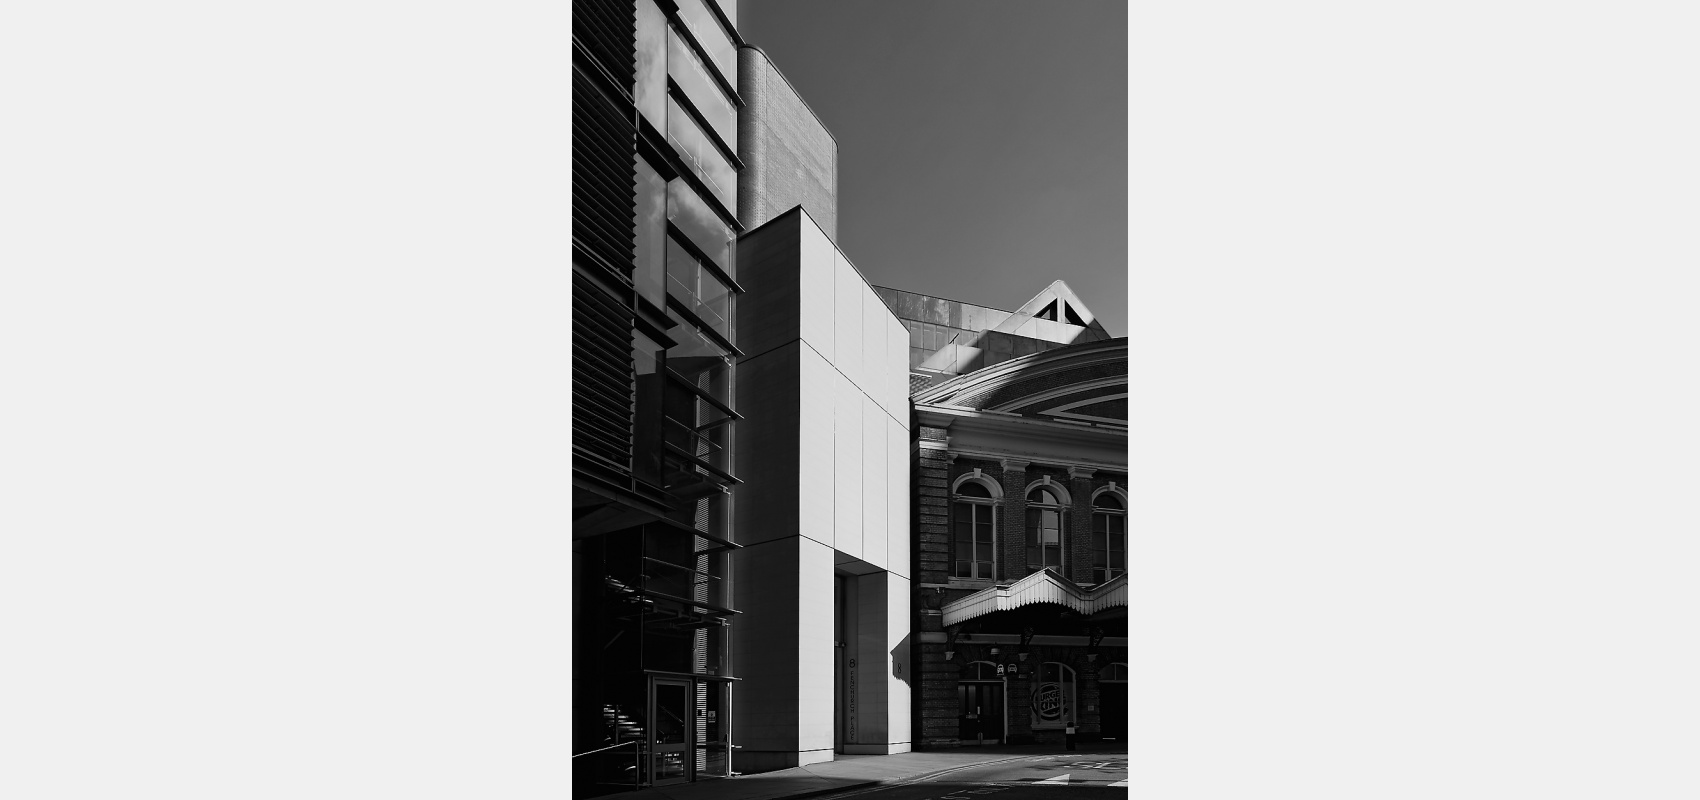 Location, London, architecture, wide, exterior, No.8 Fenchurch place, Developers.